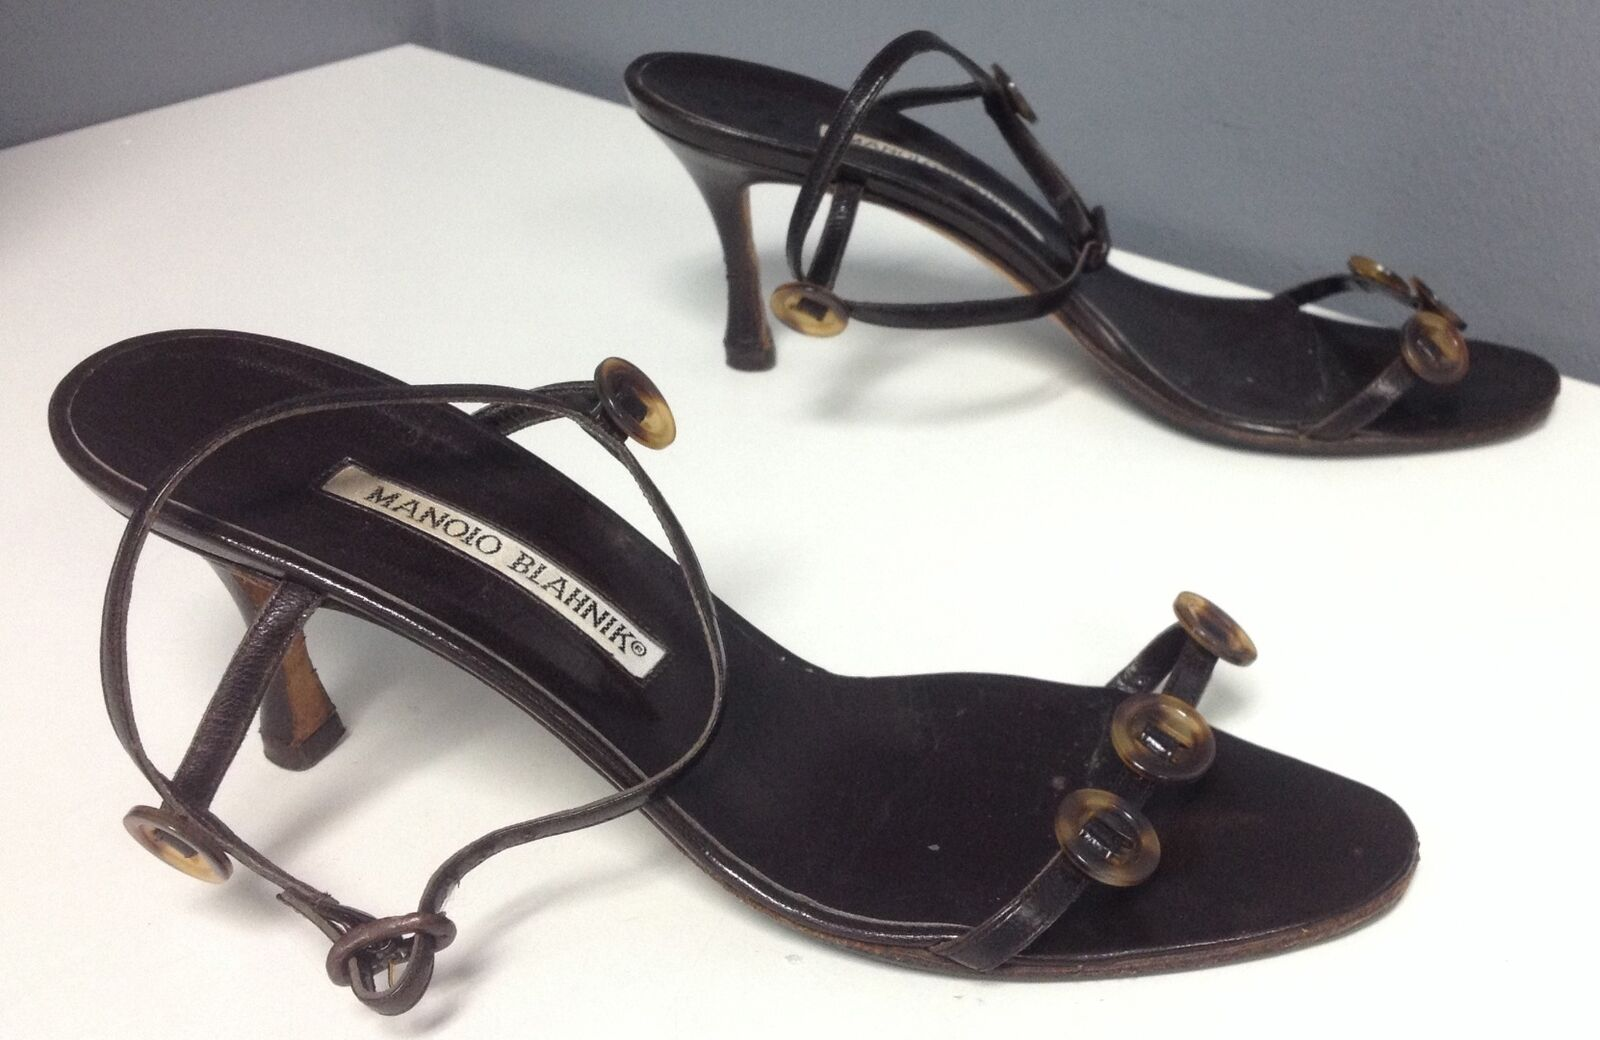 MANOLO BLAHNIK Brown Leather Button Accented Ankle Buckle Sandals Sz 37 B4539